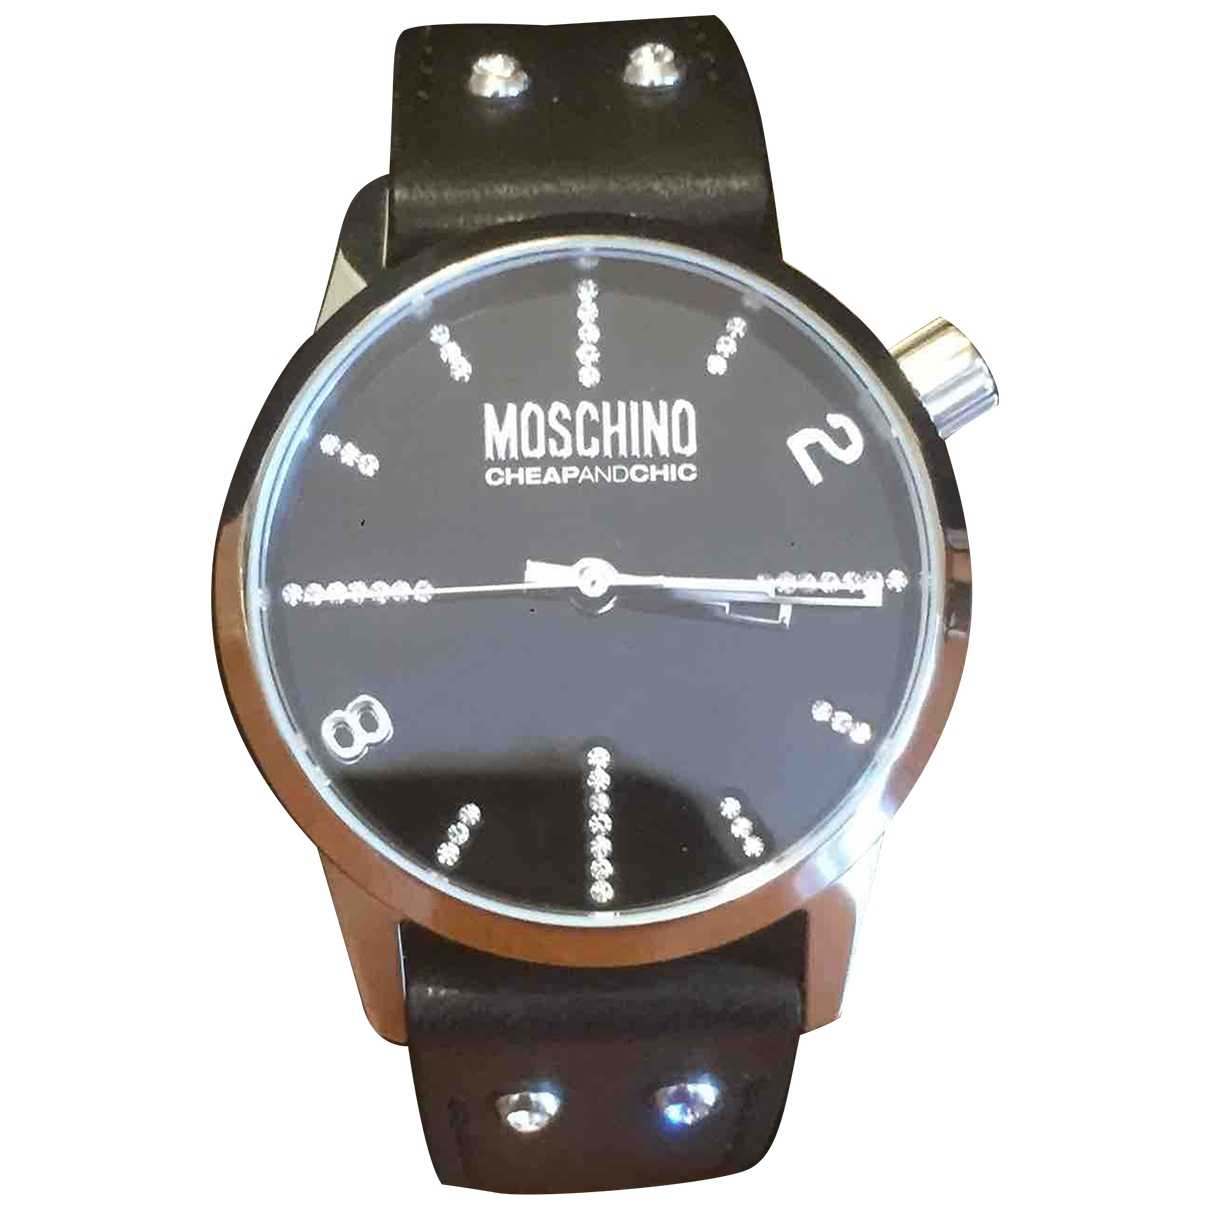 Moschino Cheap And Chic \N Black Steel watch for Women \N